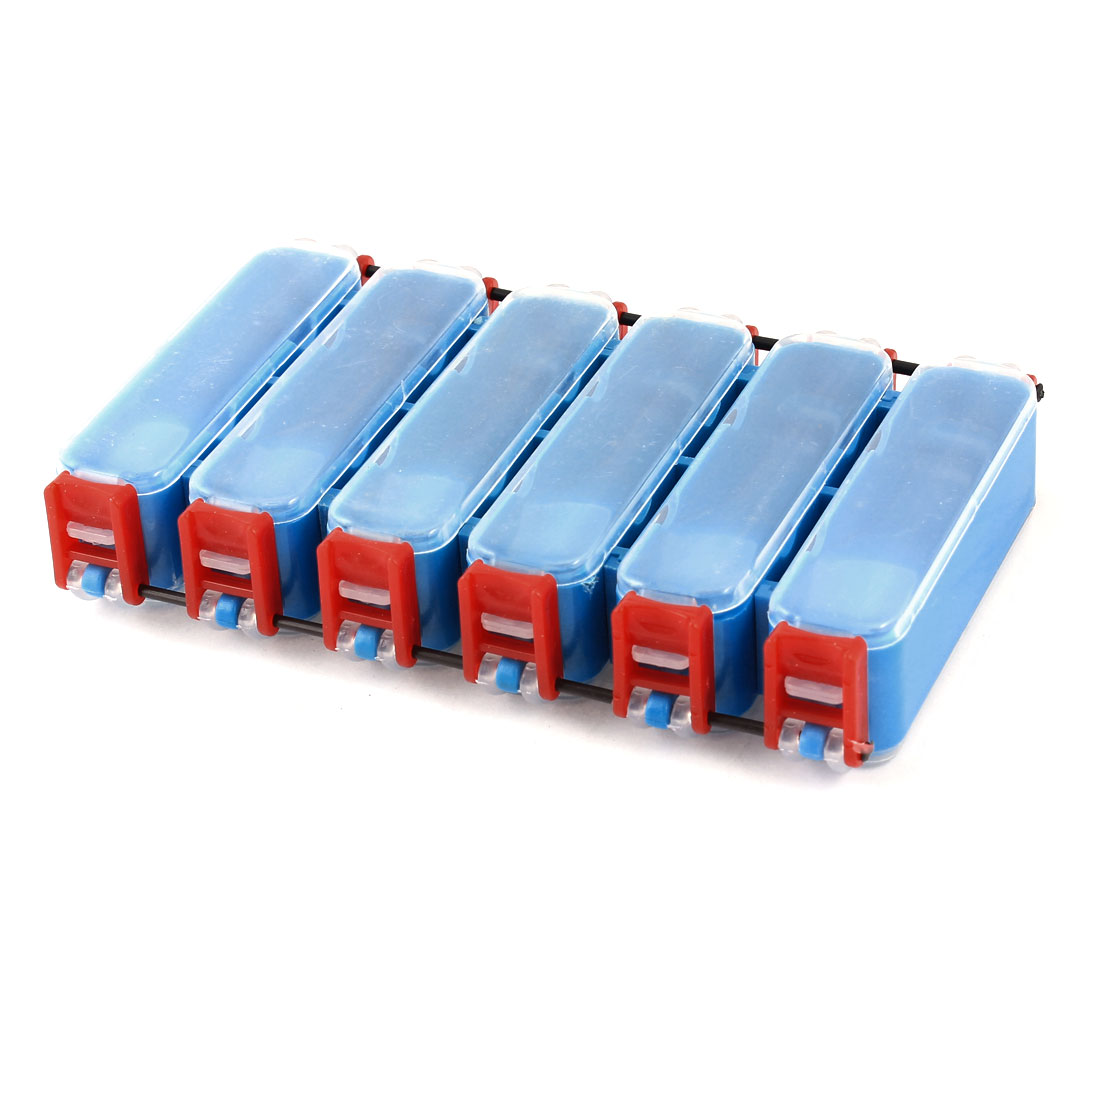 Plastic Rectangular Double Side 12 Slots Fish Hook Tackle Box Fishing Bait Lure Storage Case Holder Organizer